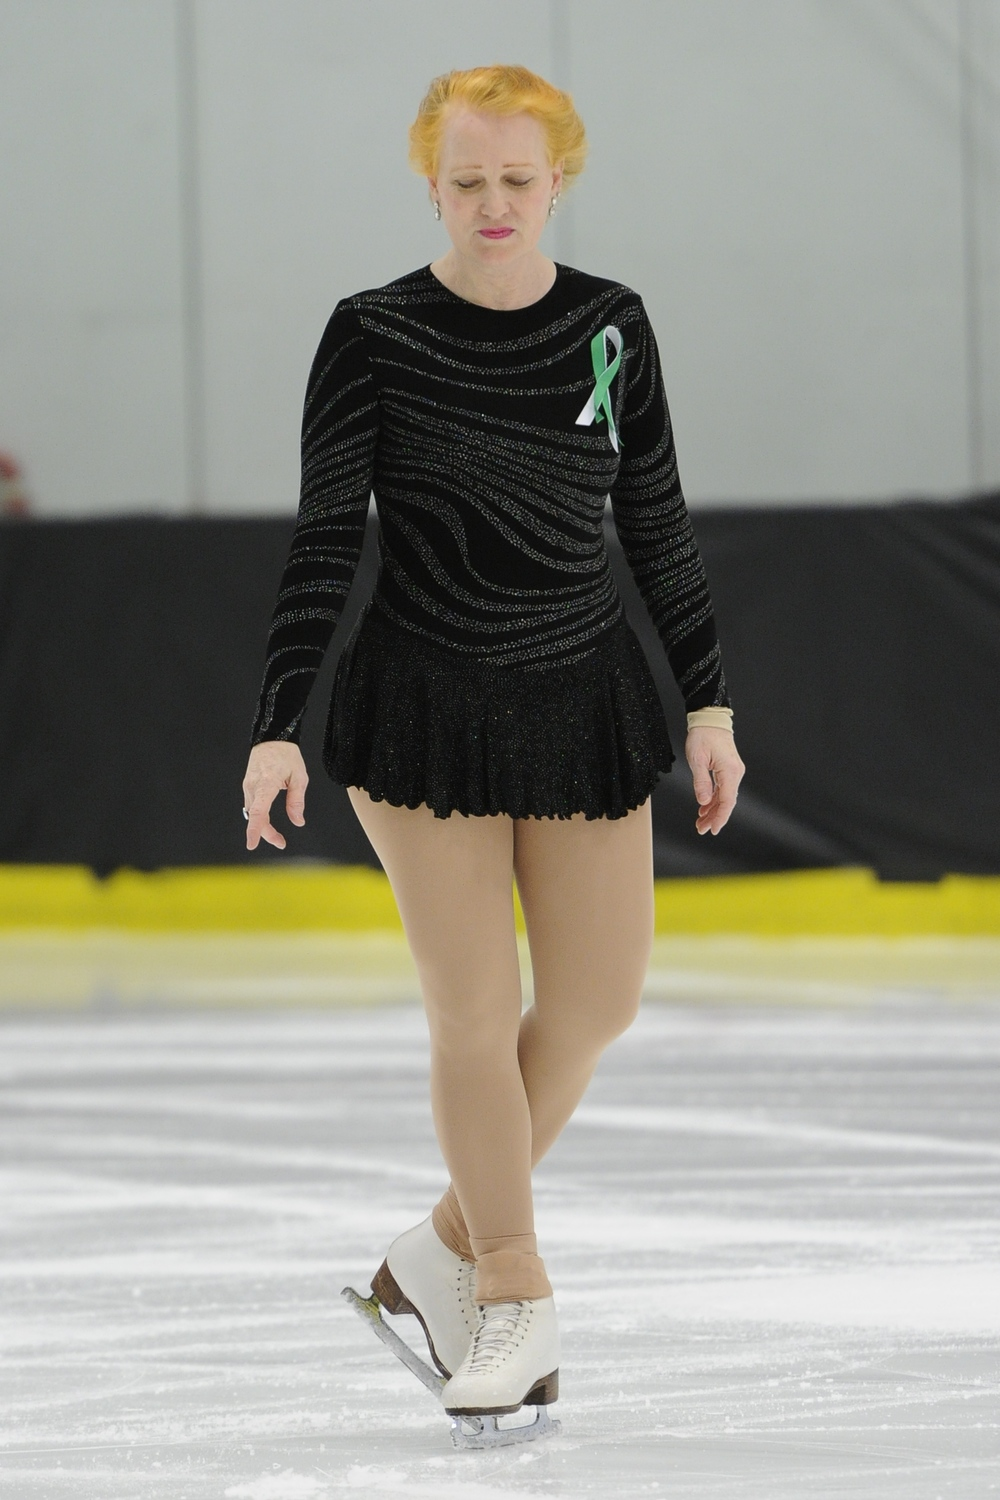 2014 ADULT NATIONALS